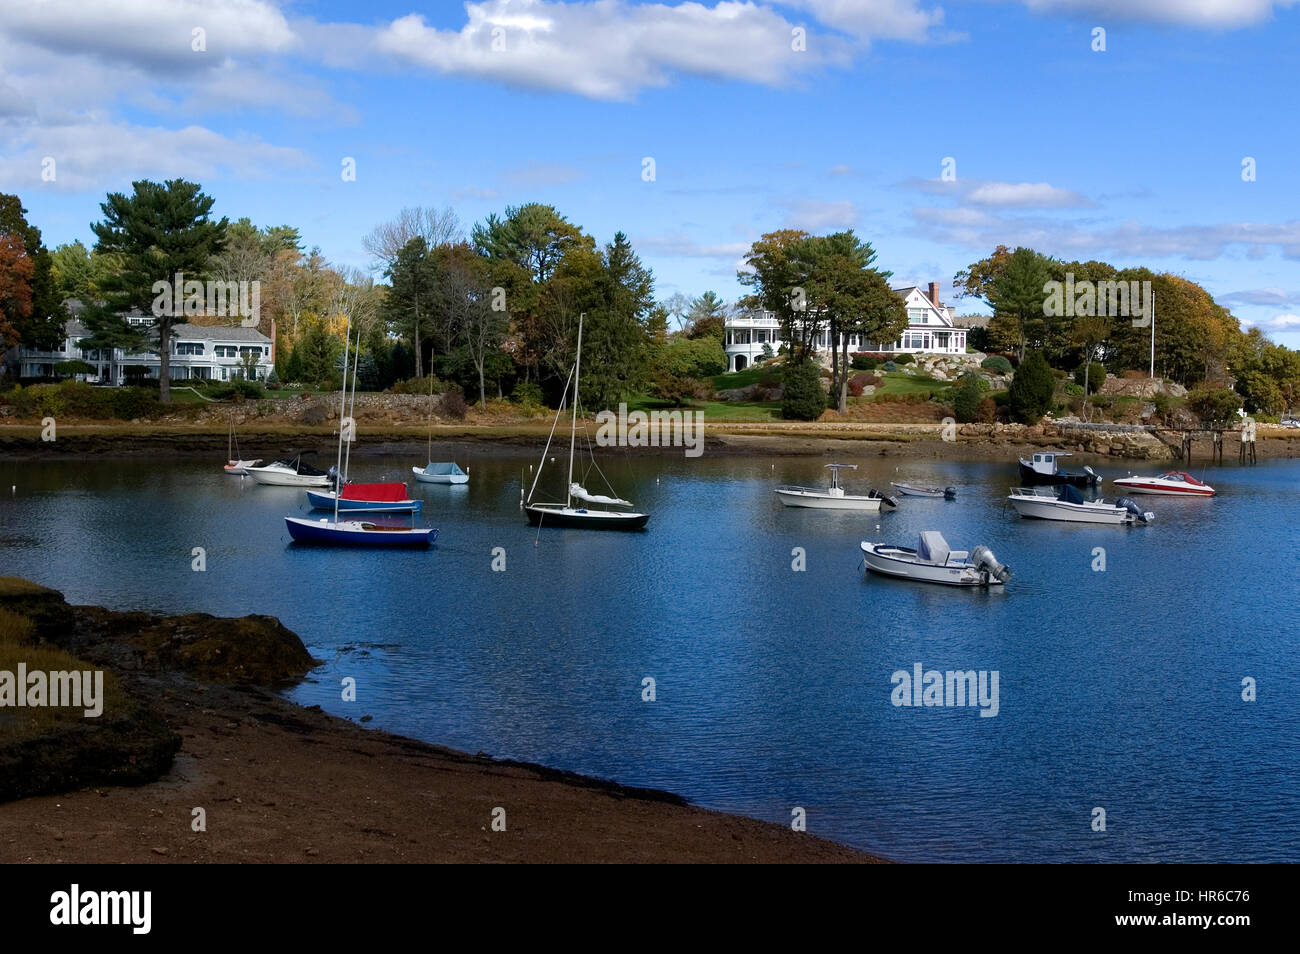 The harbor in the seaside  town of Manchester by the Sea, Massachusetts - Setting for the movie of the same name. Stock Photo